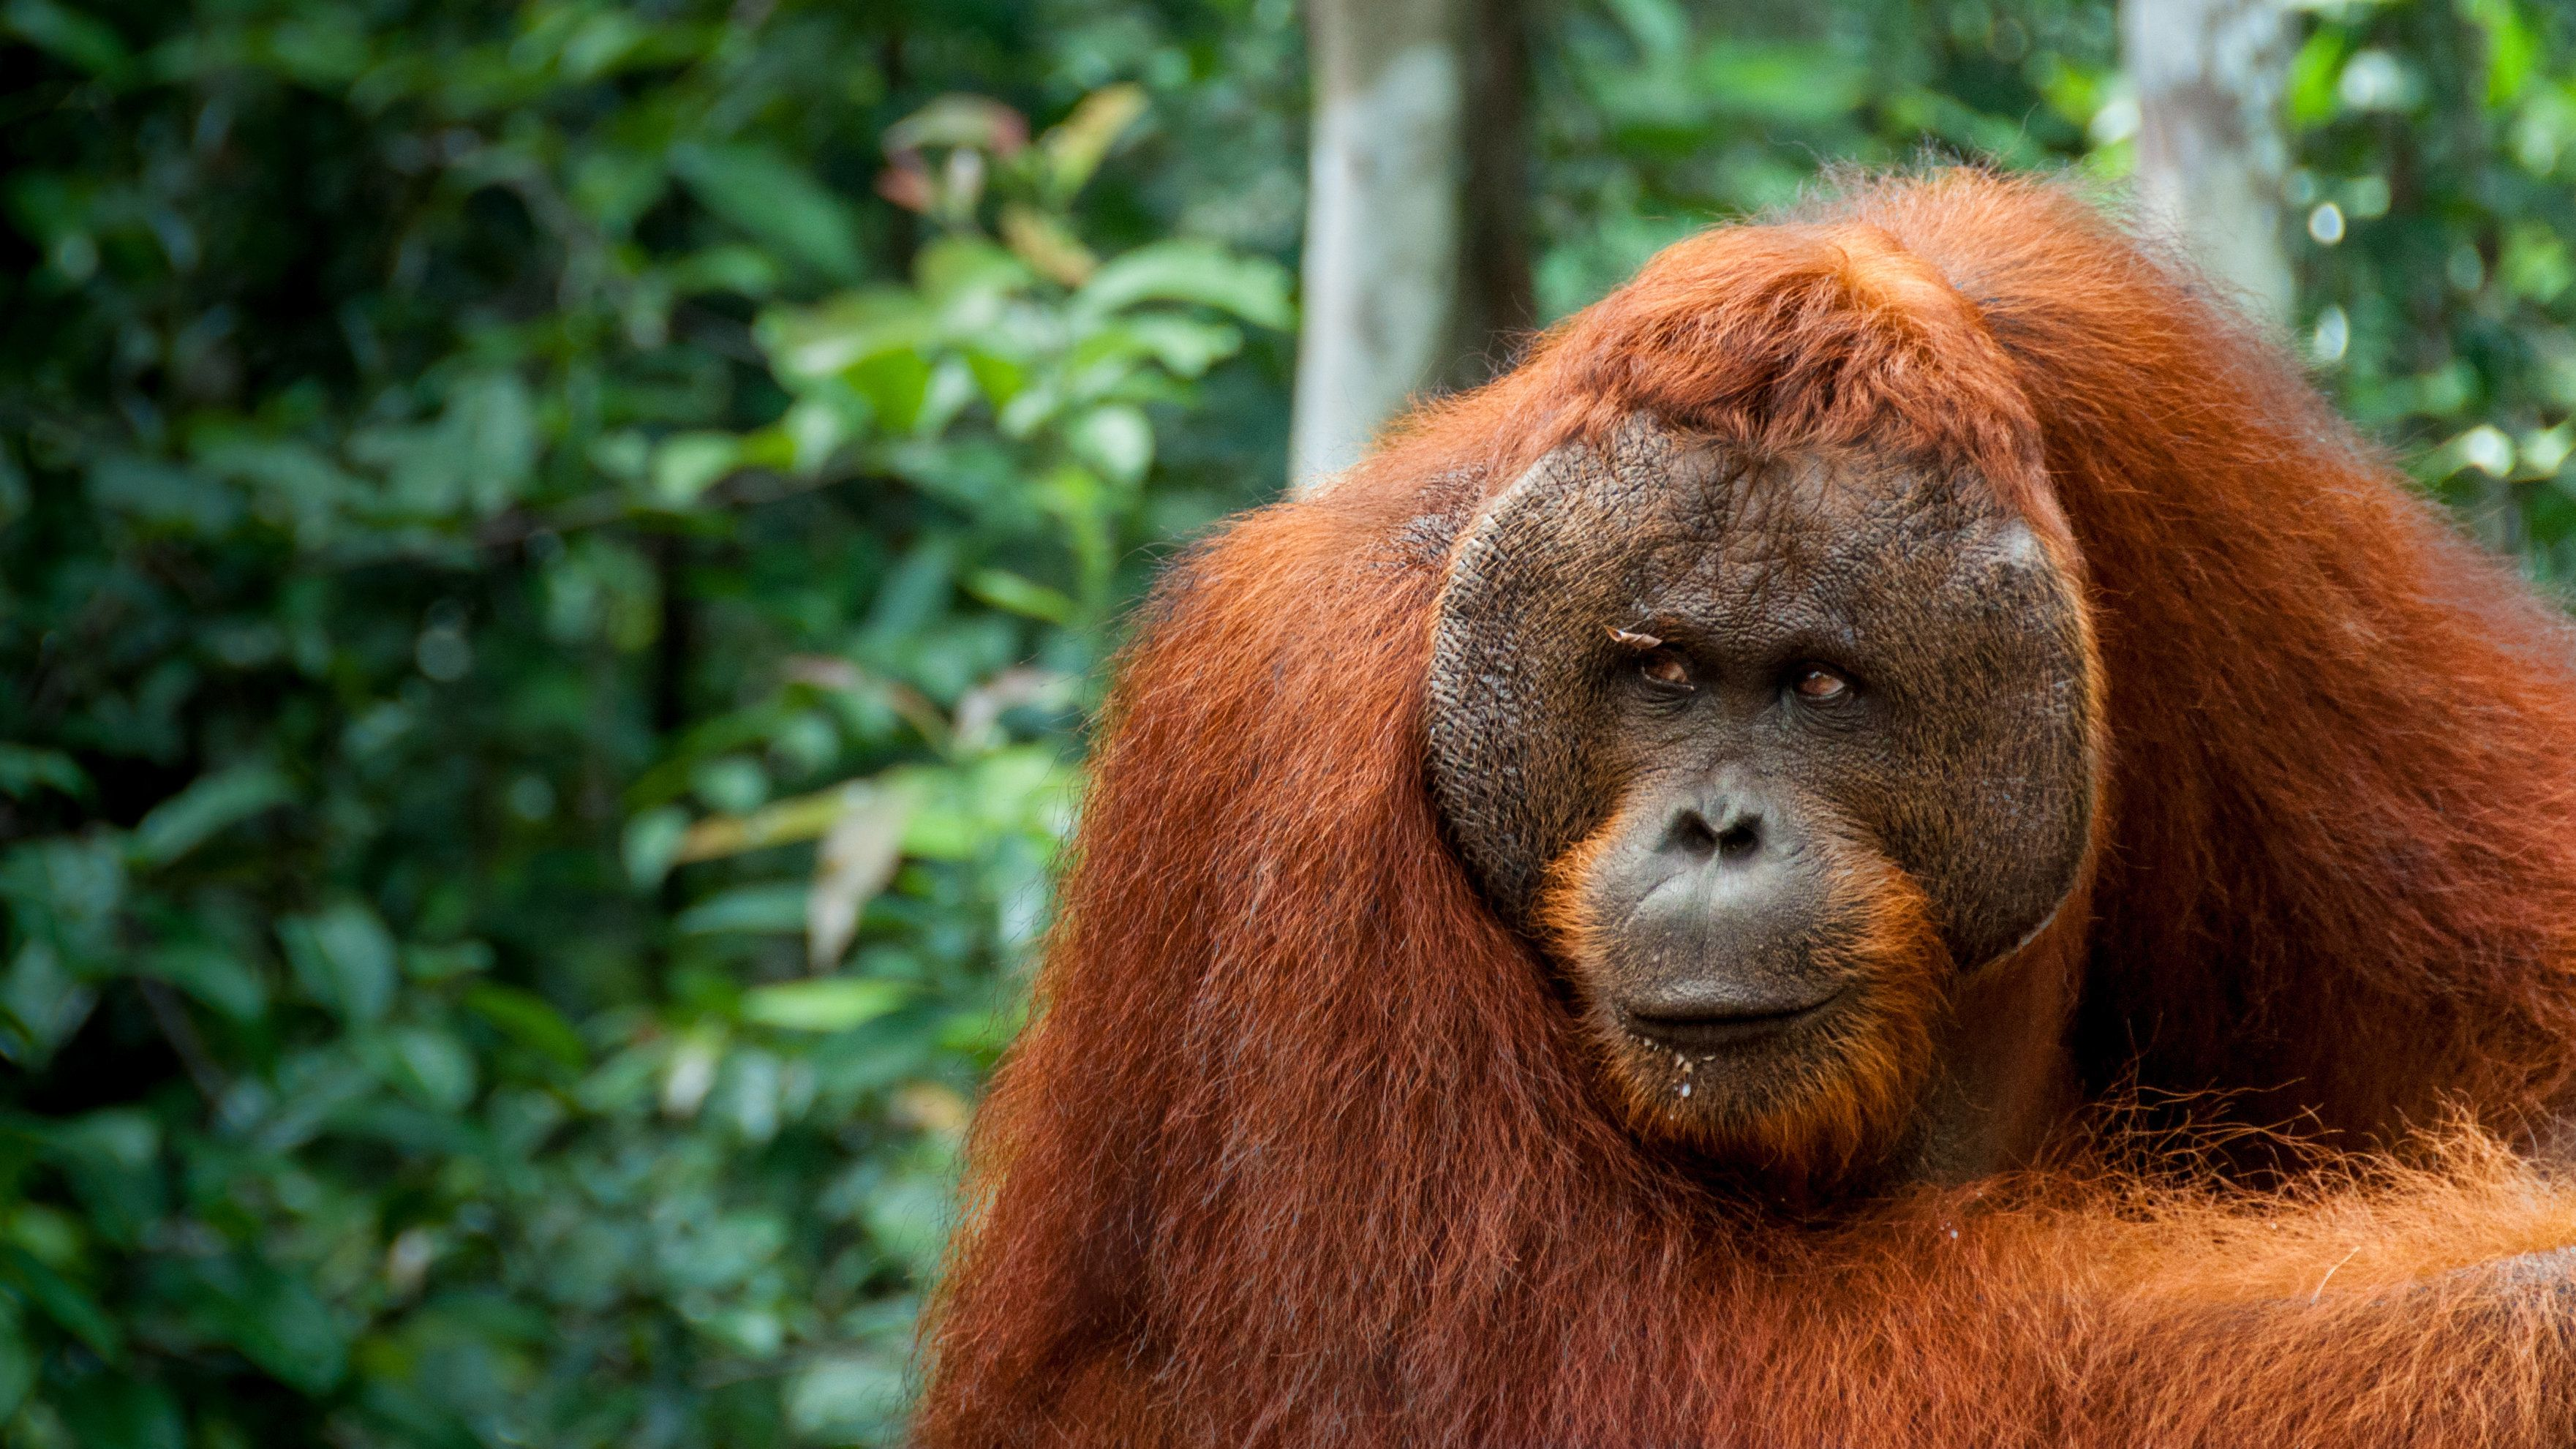 Orang Utan Alpha male resting in Borneo